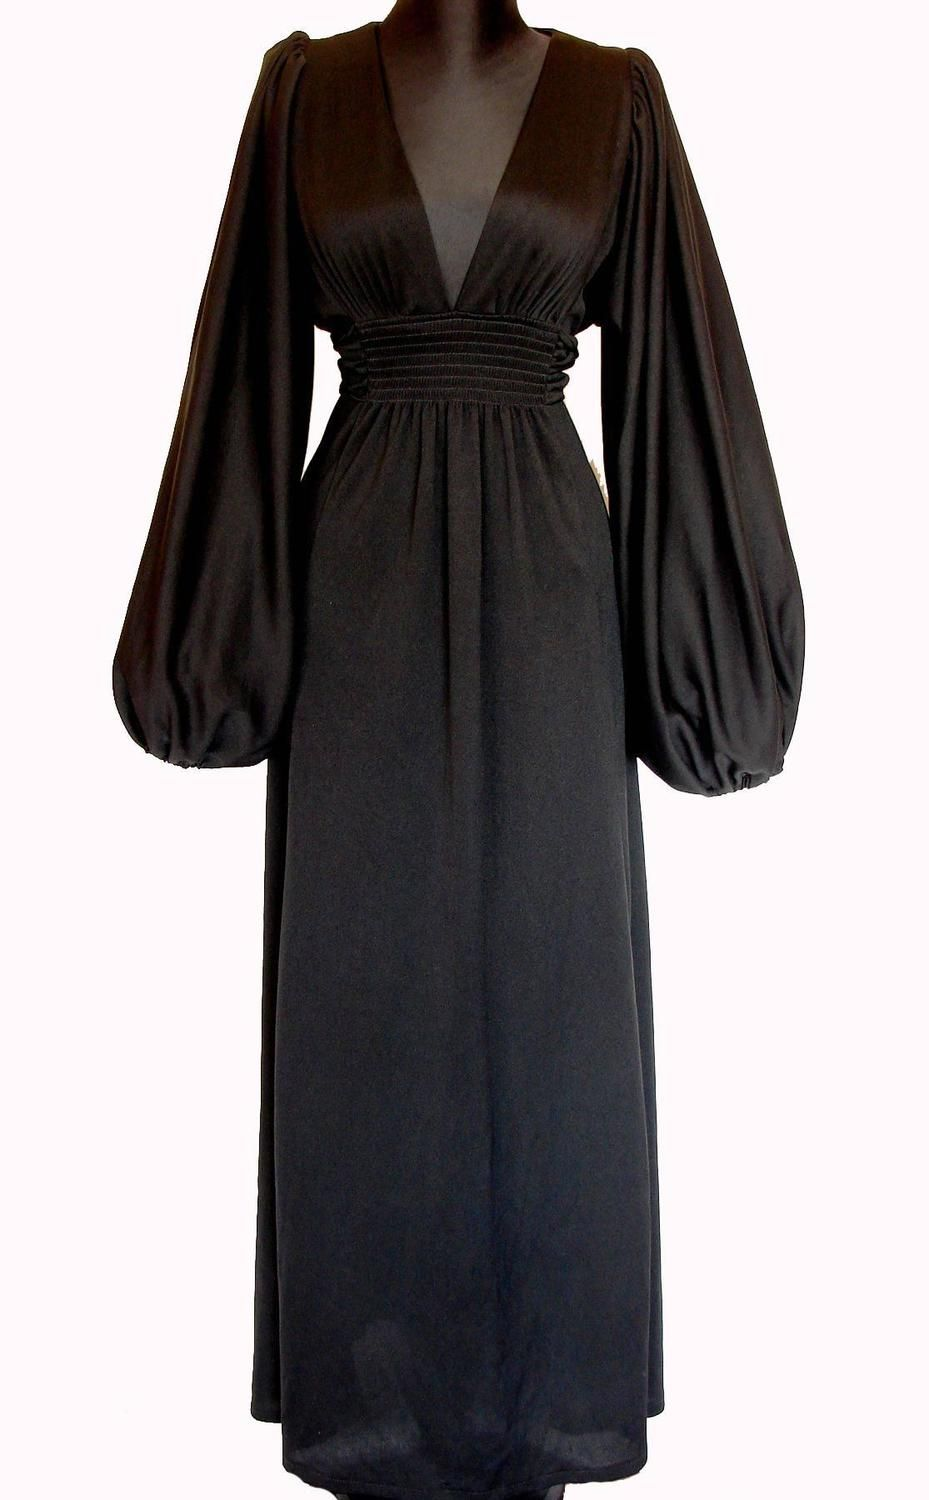 Vintage and Designer Evening Dresses and Gowns - 14,225 For Sale at 1stdibs